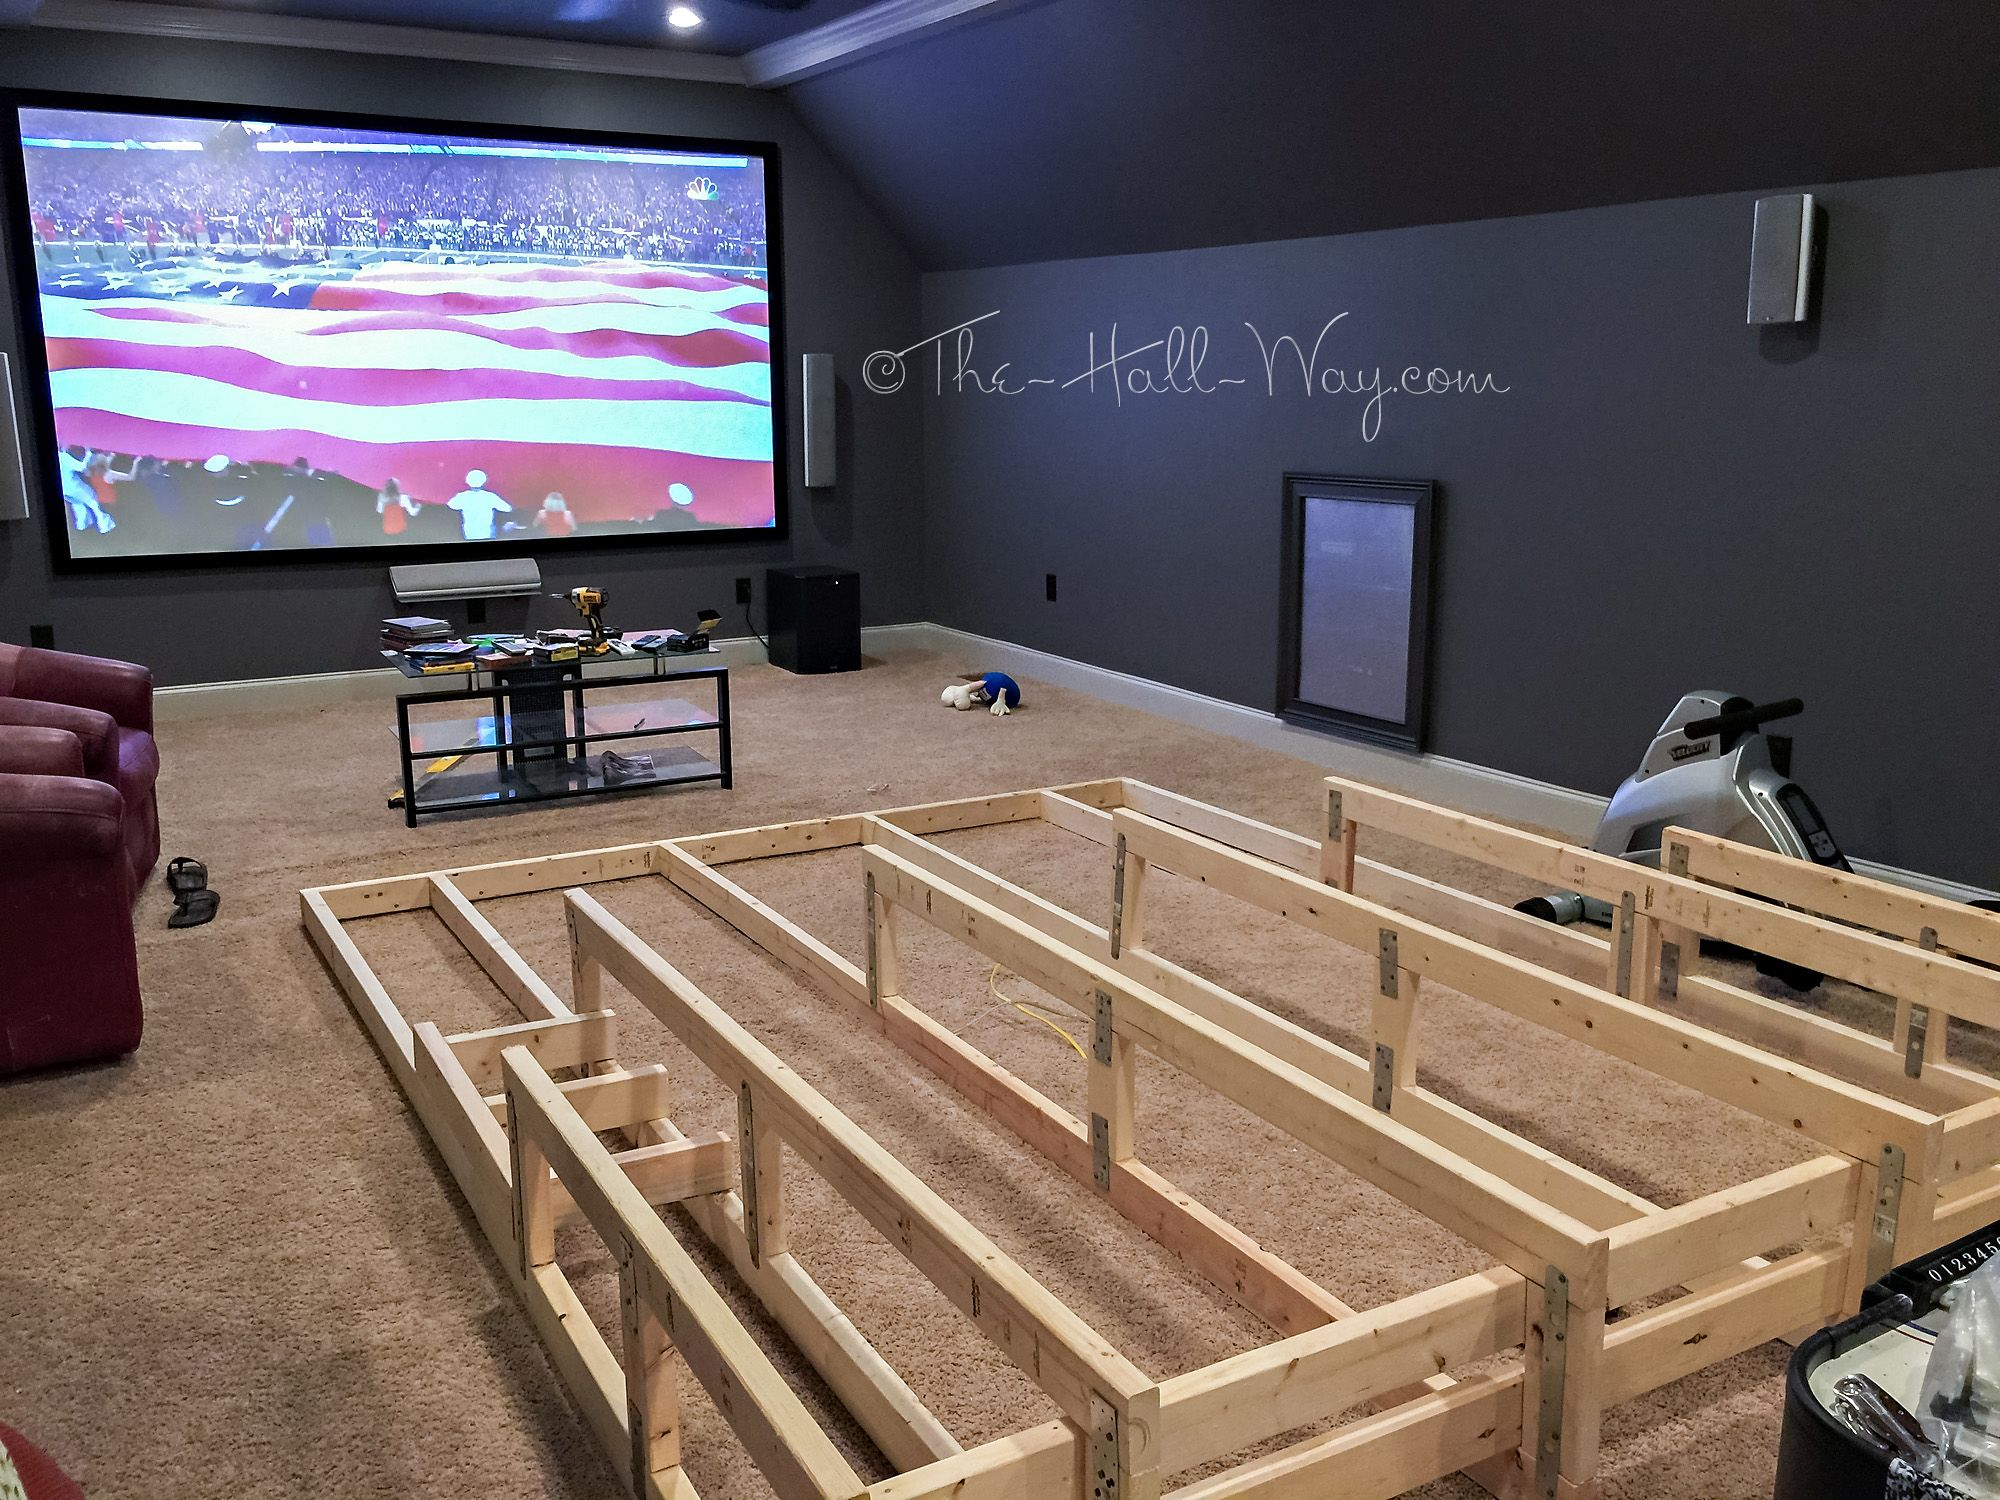 Media home theater riser diy i would add running lights - Home theater stadium seating design ...